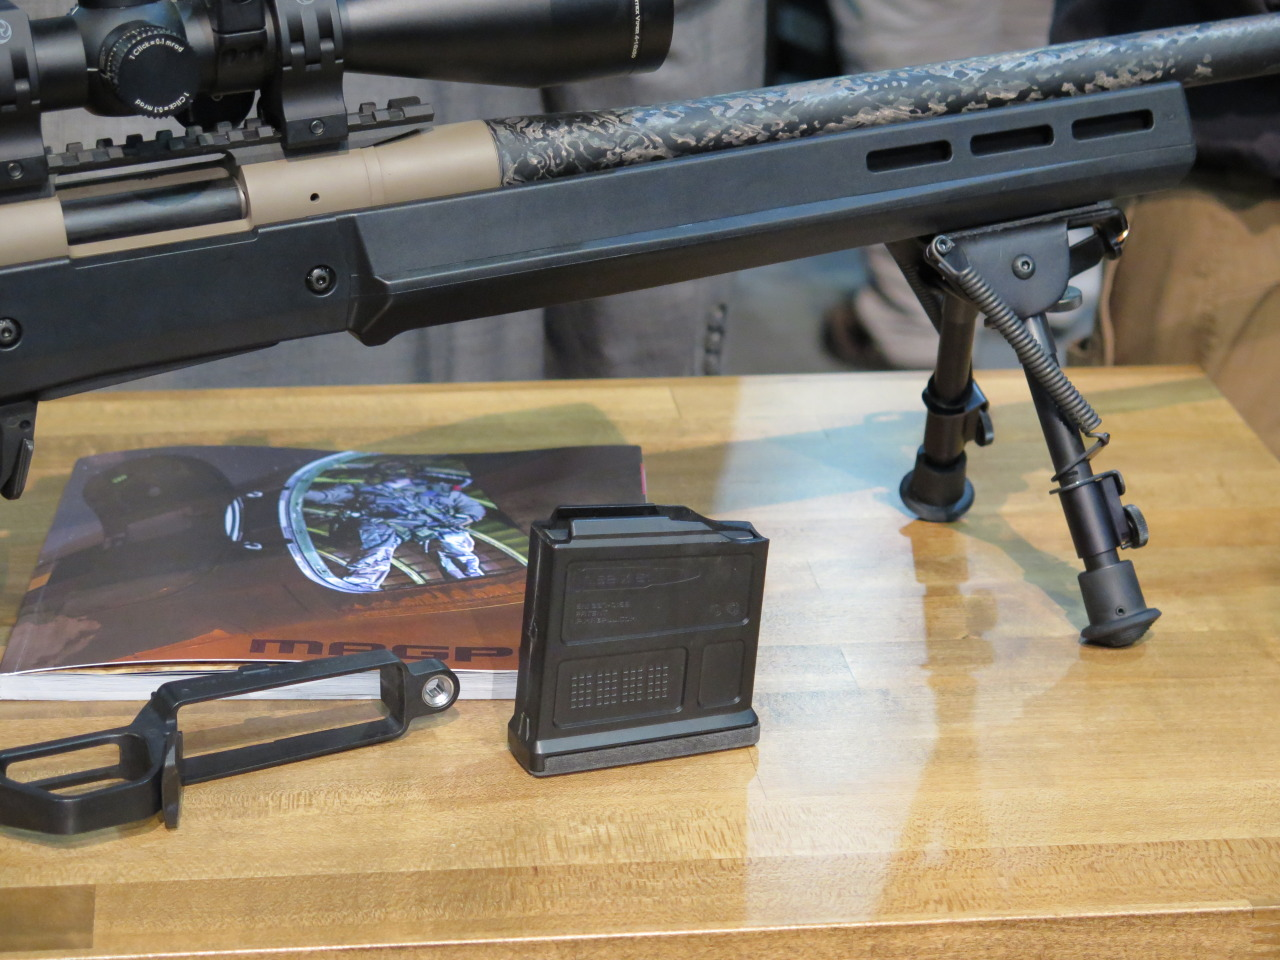 Close-up of the Magpul AICS Polymer Magazine